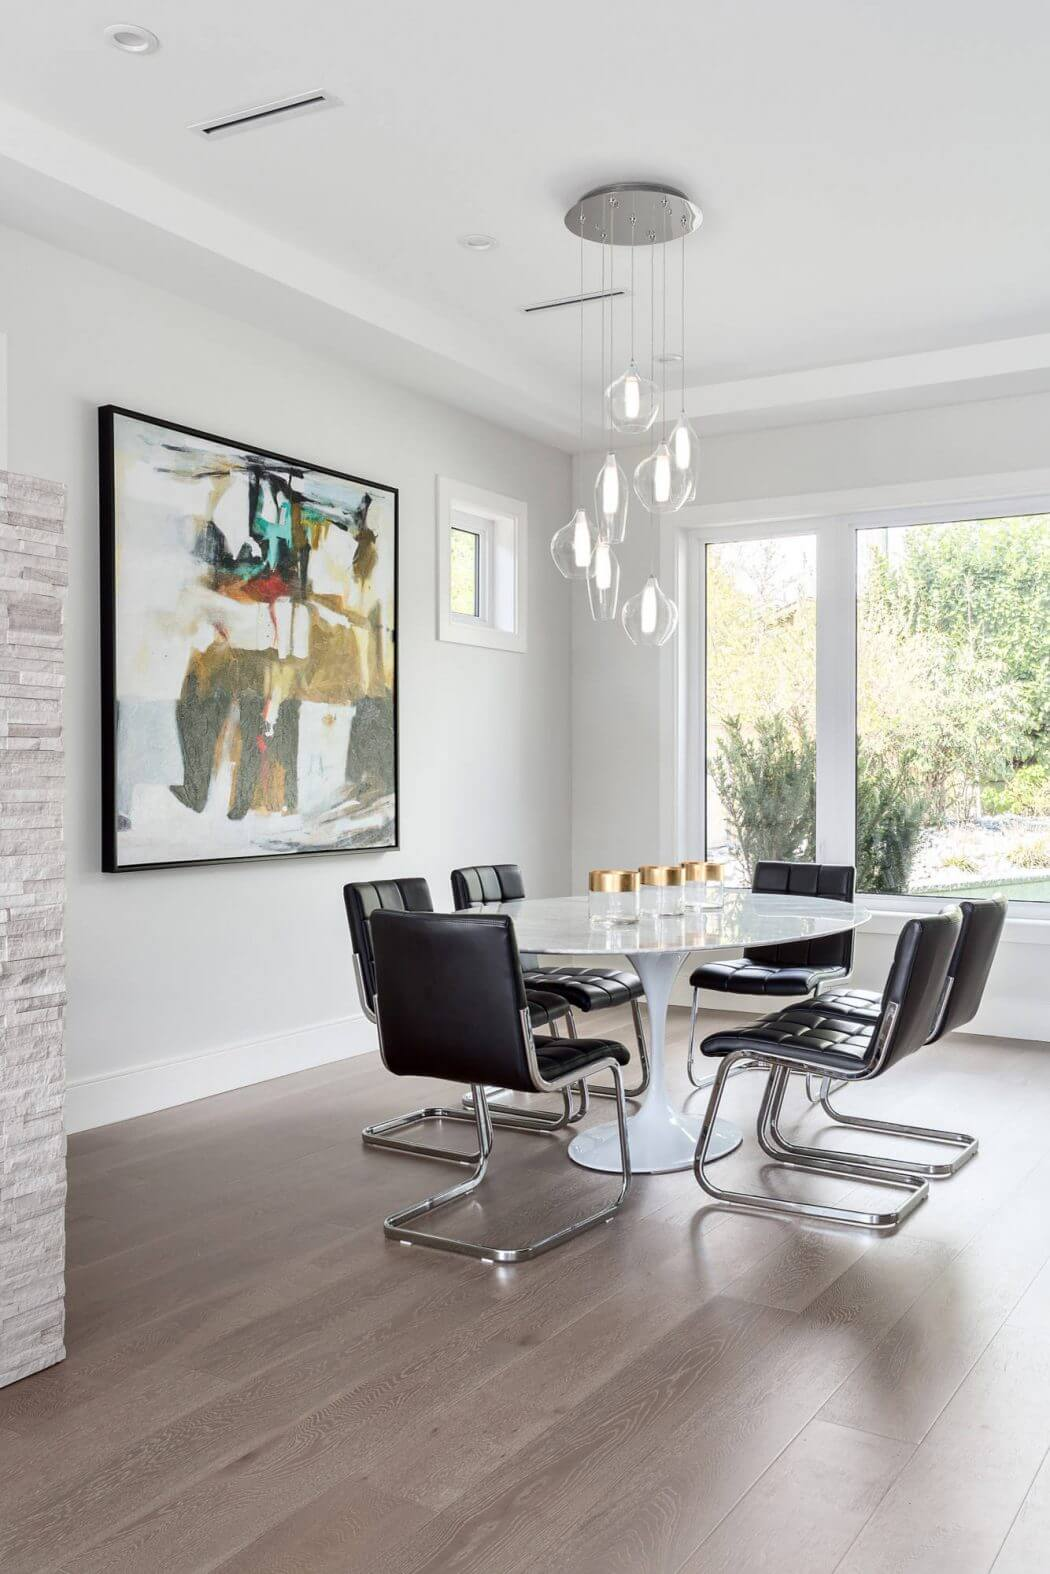 Interior designer home vancouver - Pin Save Email